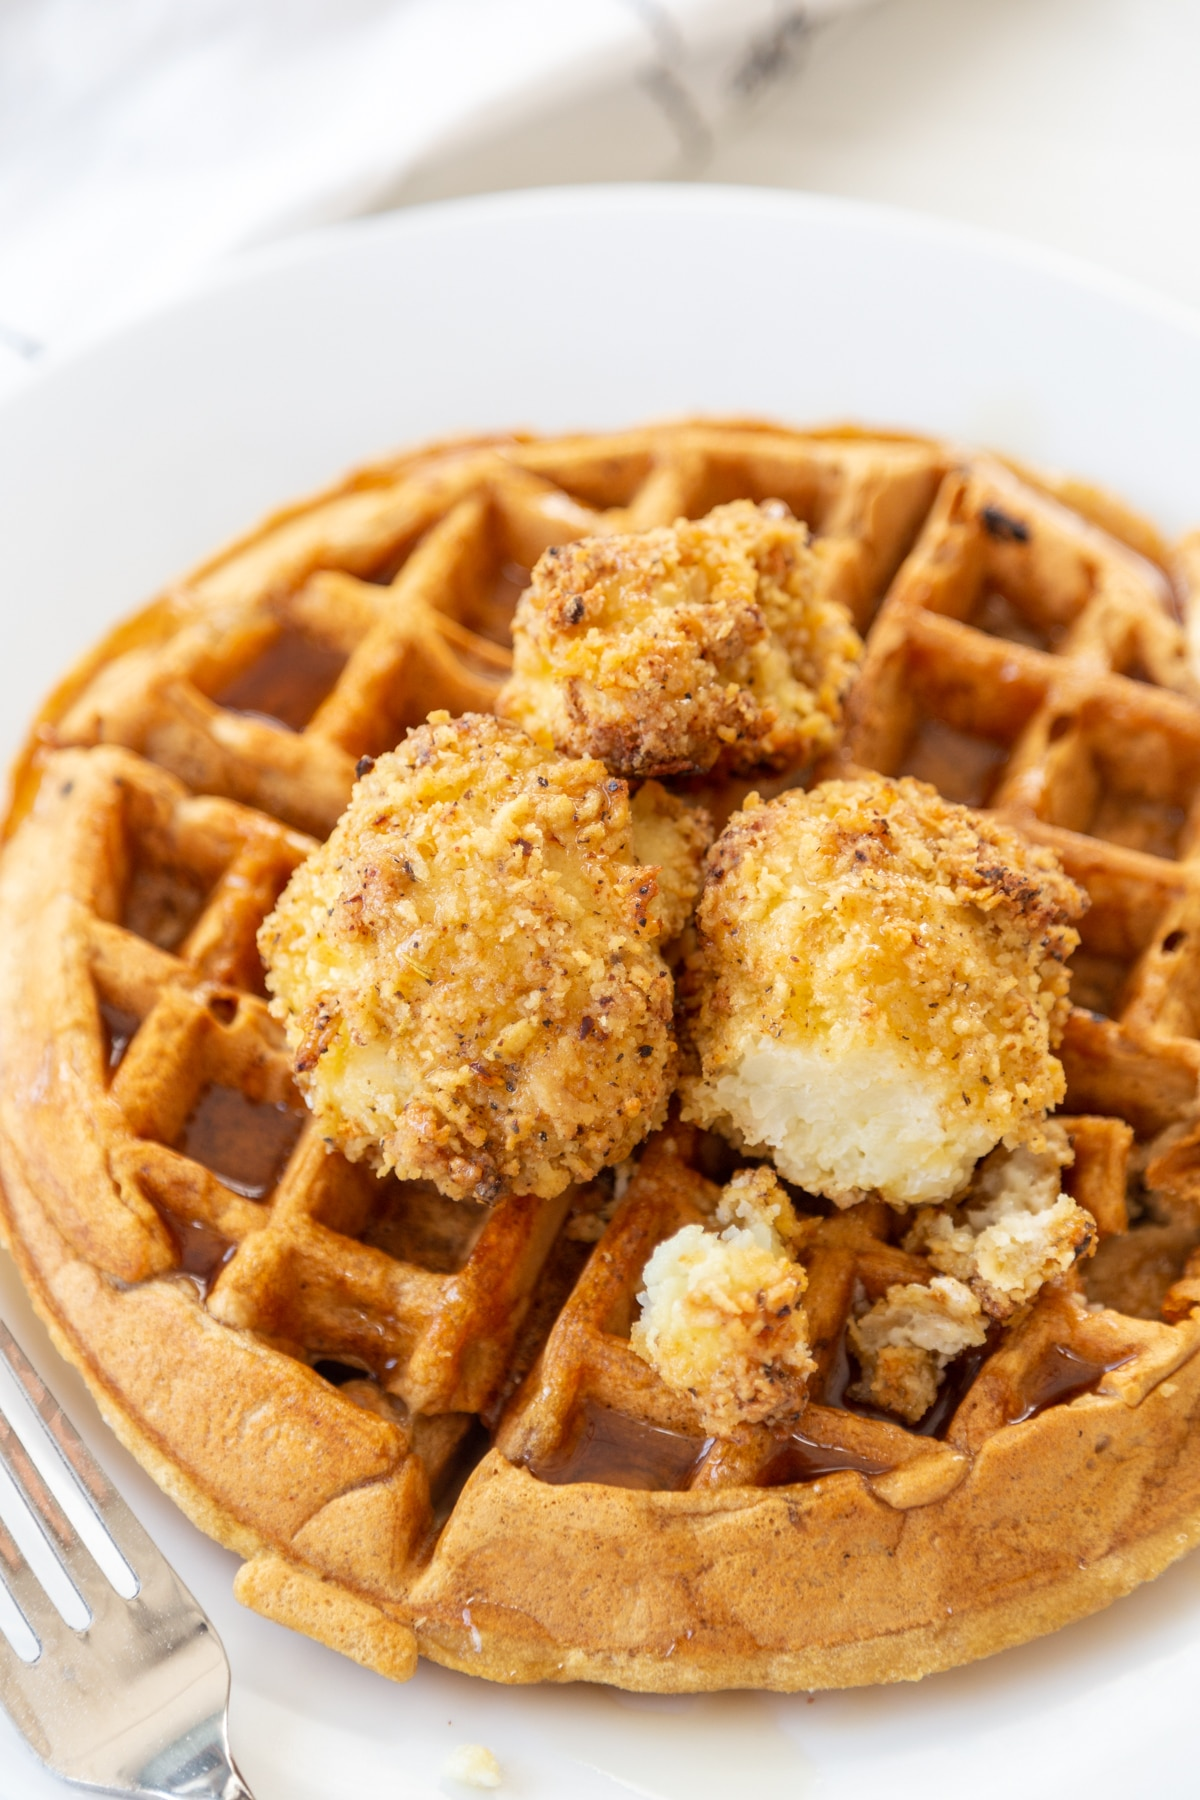 A Belgian waffle on a white plate with crispy cauliflower and maple syrup on top. A silver fork is next to the plate.